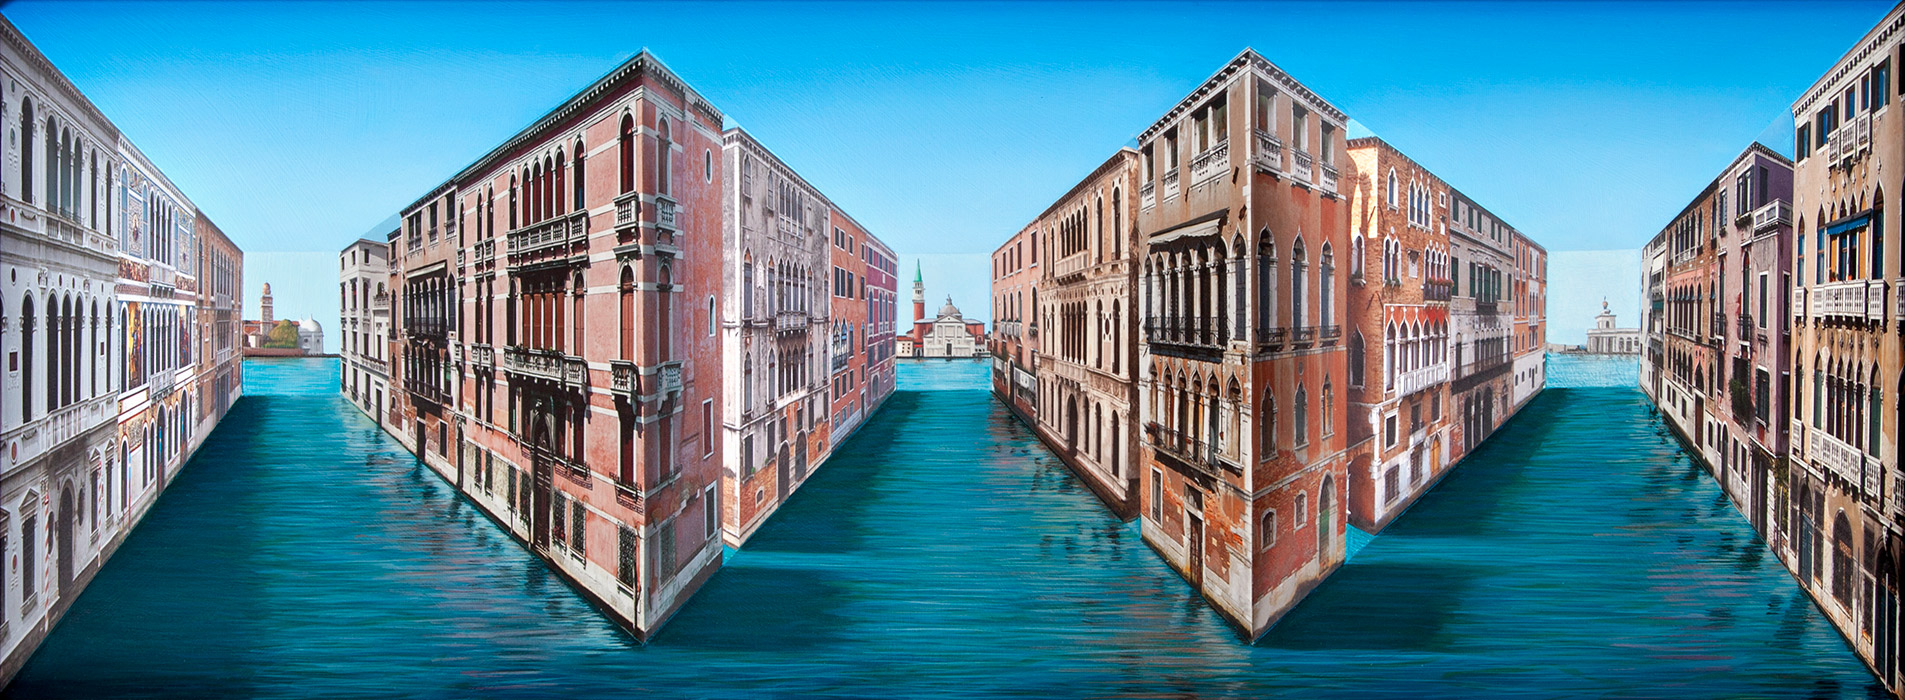 Via Venezia <p>2015 | Edition 5 | 46 x 94.5 x 13.5 cm / 18 x 37 x 5 in</p>